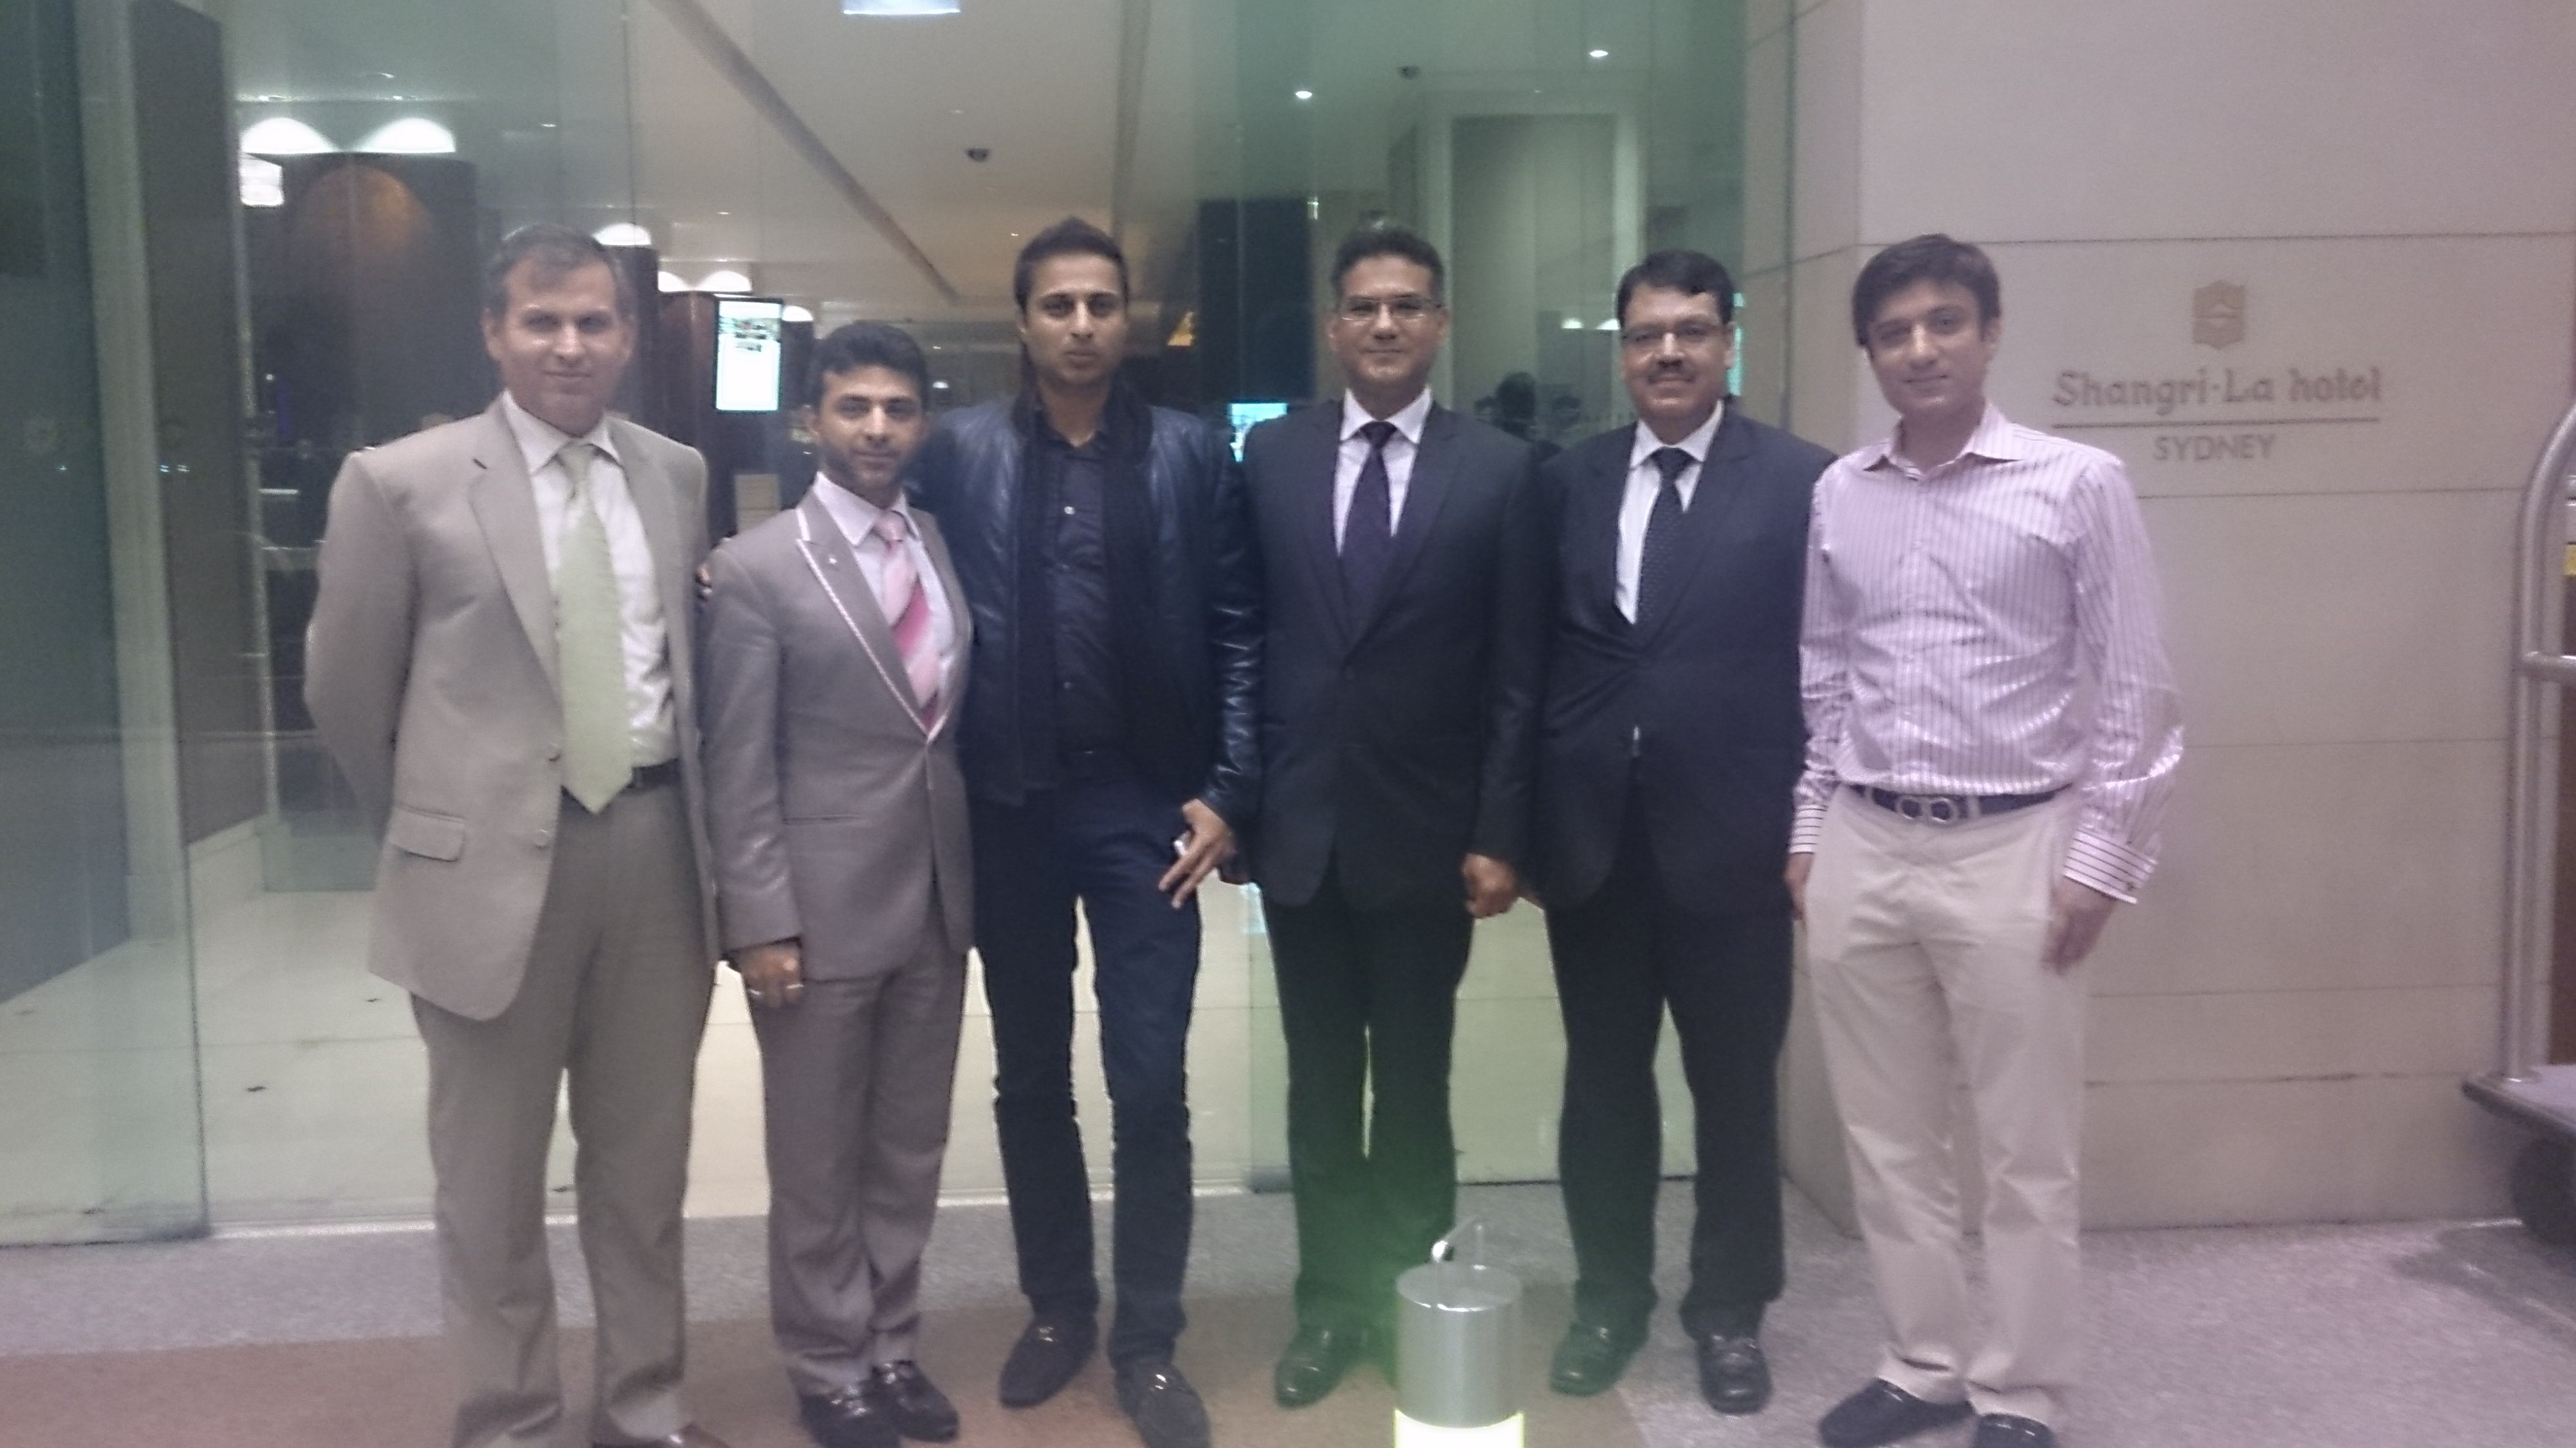 106341a3ccb86 Newly appointed Consulate Officers welcomed by Australian Pakistanis ...